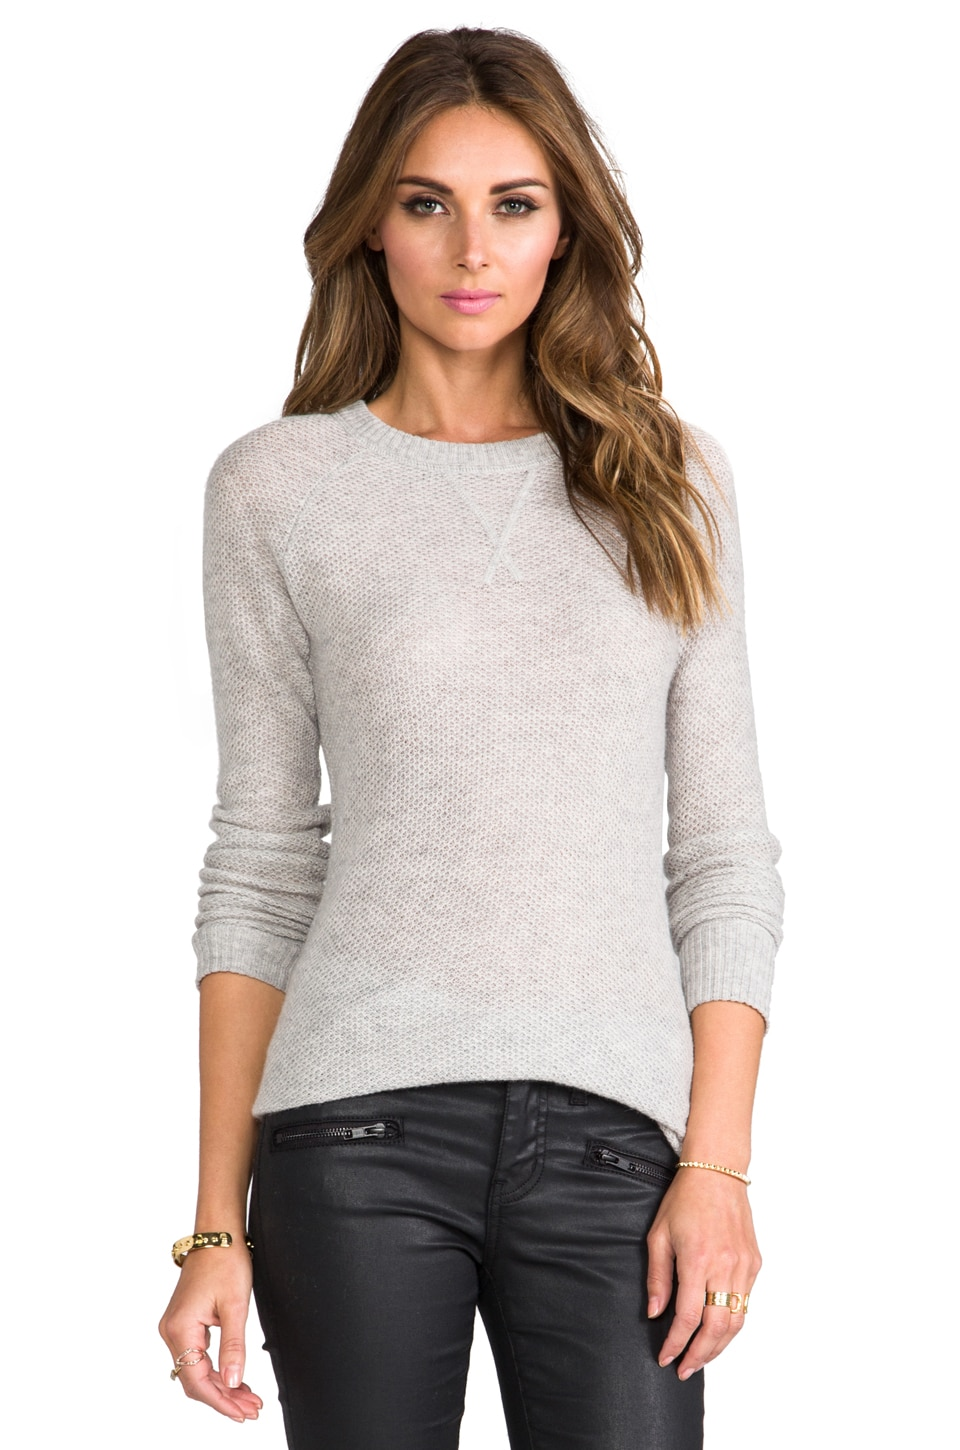 Autumn Cashmere Honeycomb Stitch Crew Neck Pullover in Fog